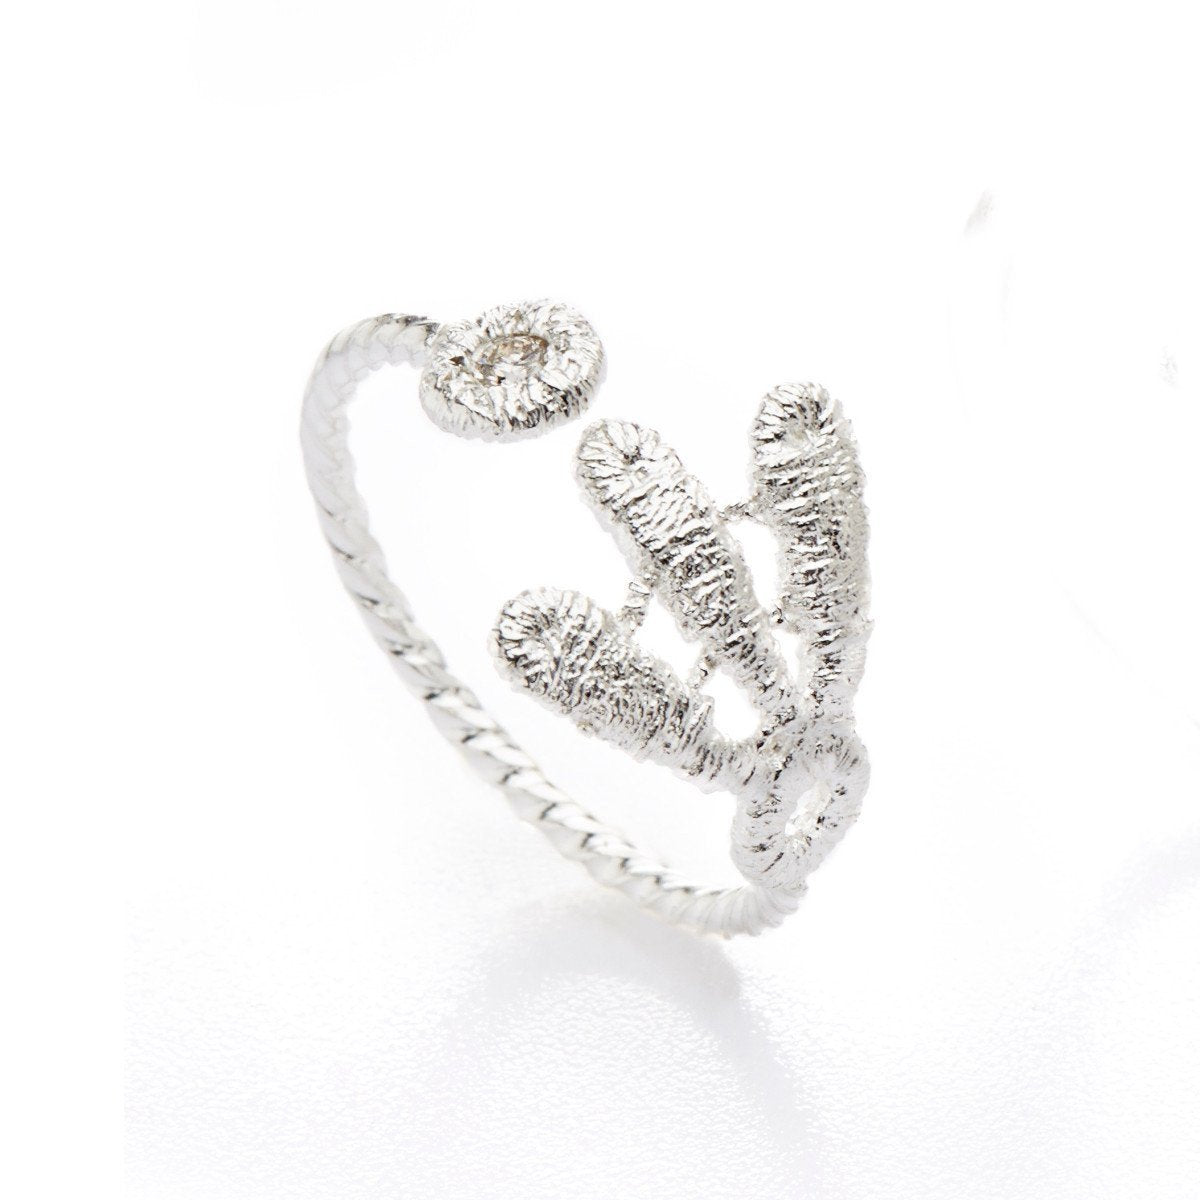 Carmen Silver Ring/ Knuckle Ring